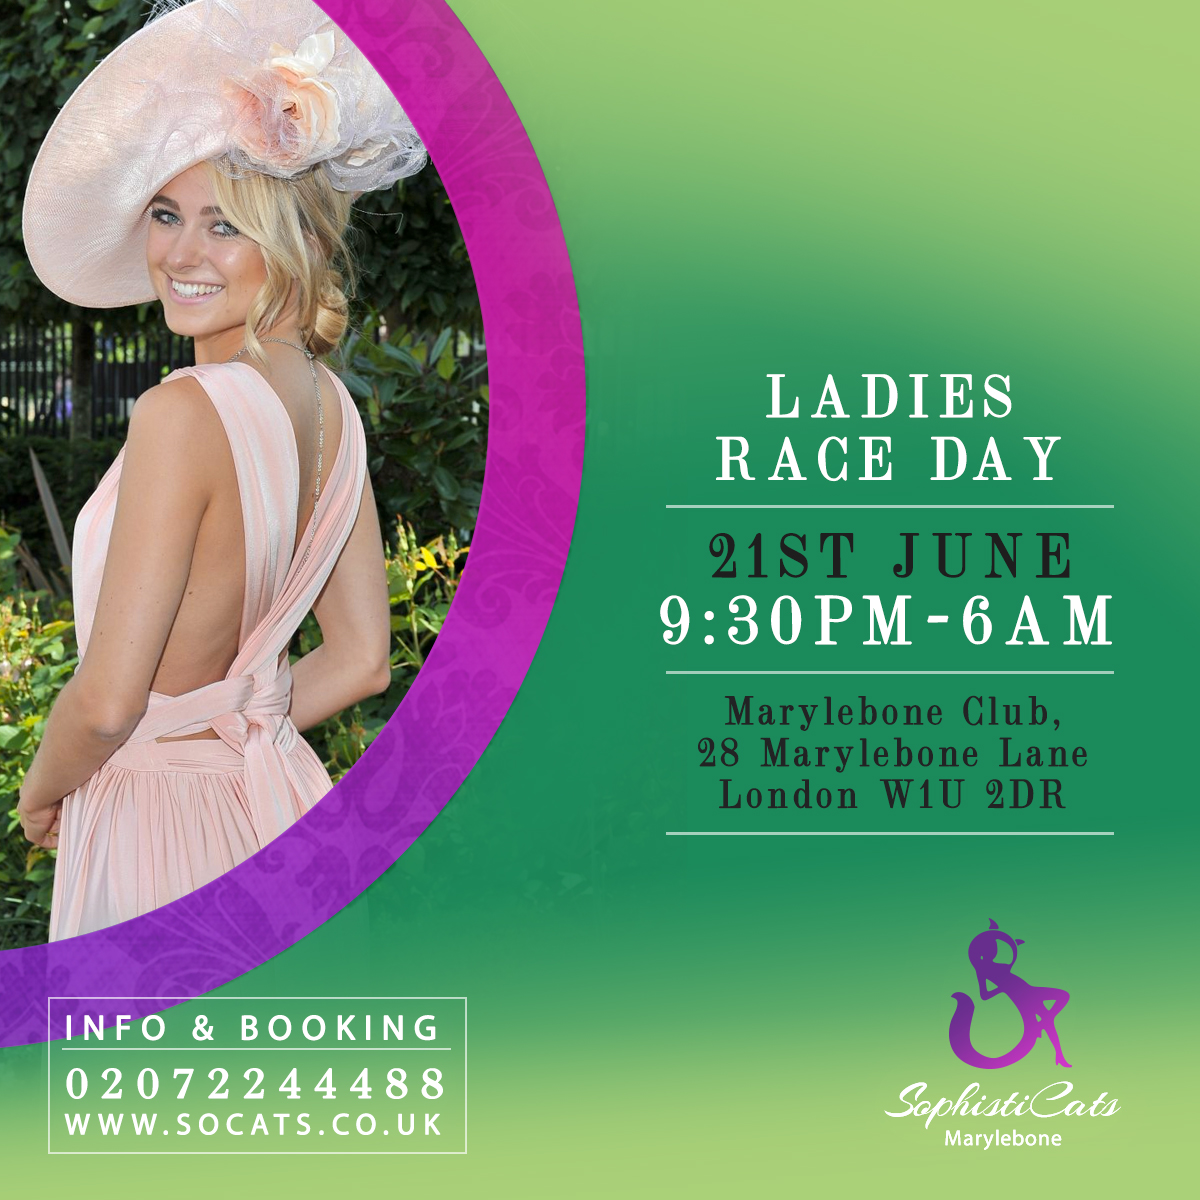 ladies-race-day-june_sophisticats_best_strip_club_london_2018_Maryl